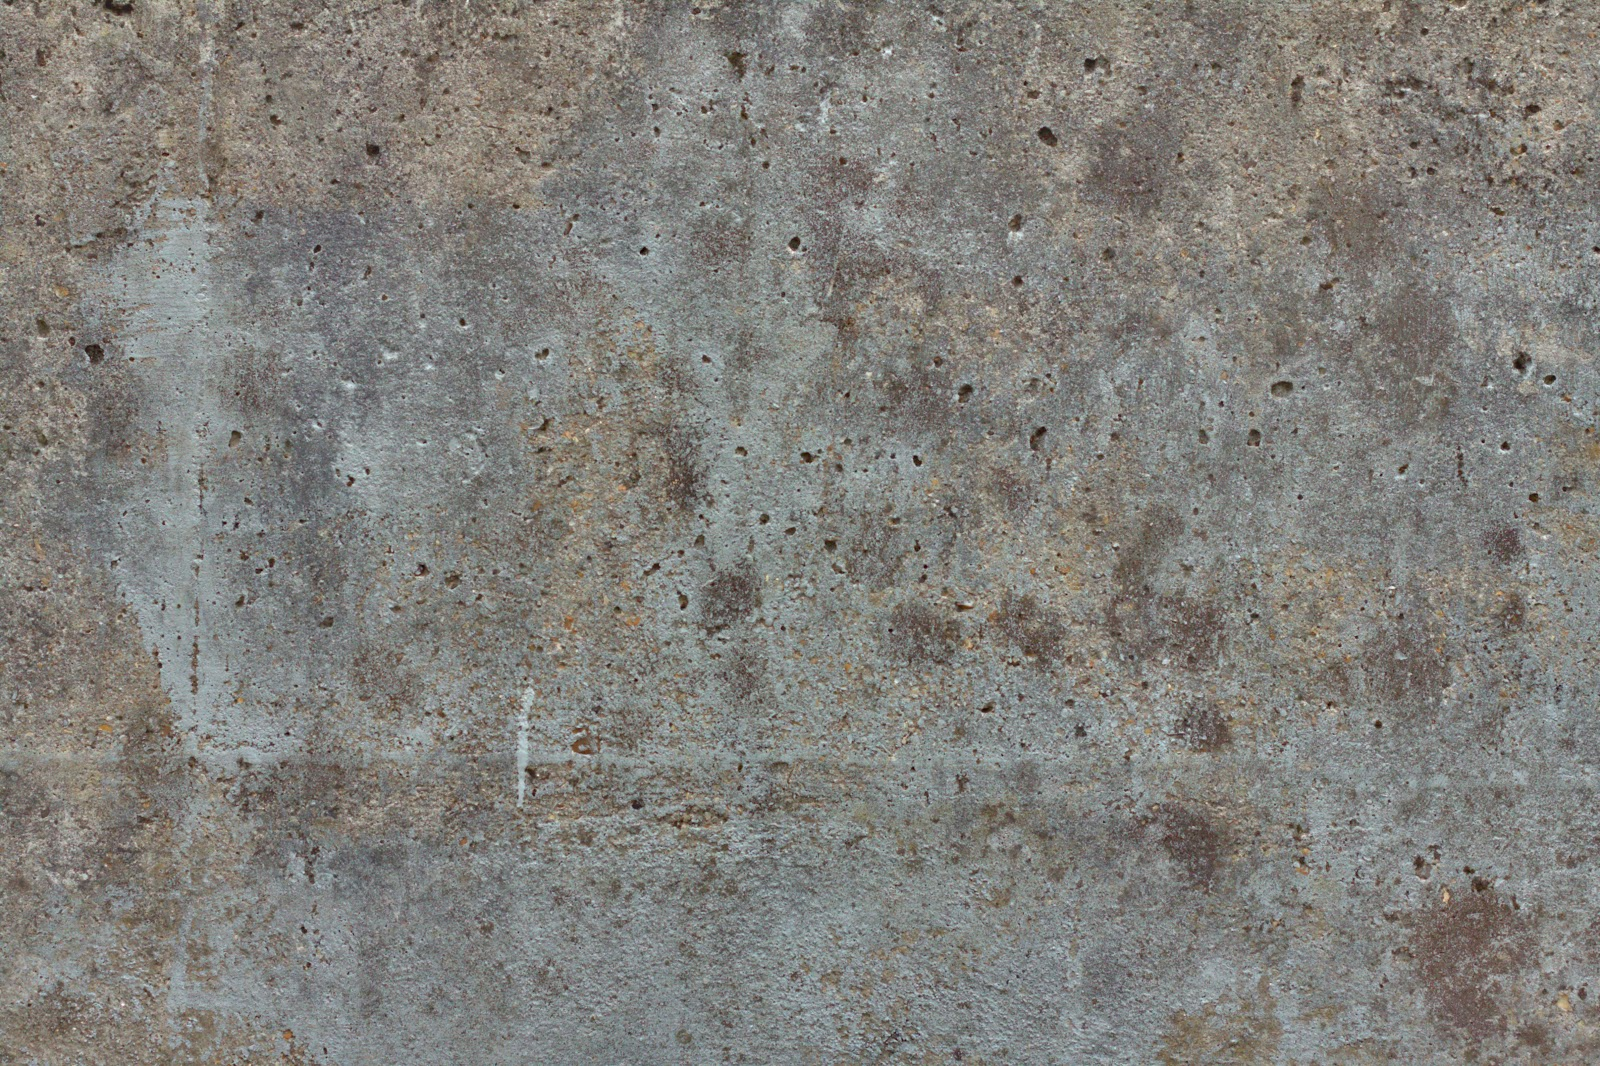 Semeless old floor texture www.topsimages.com